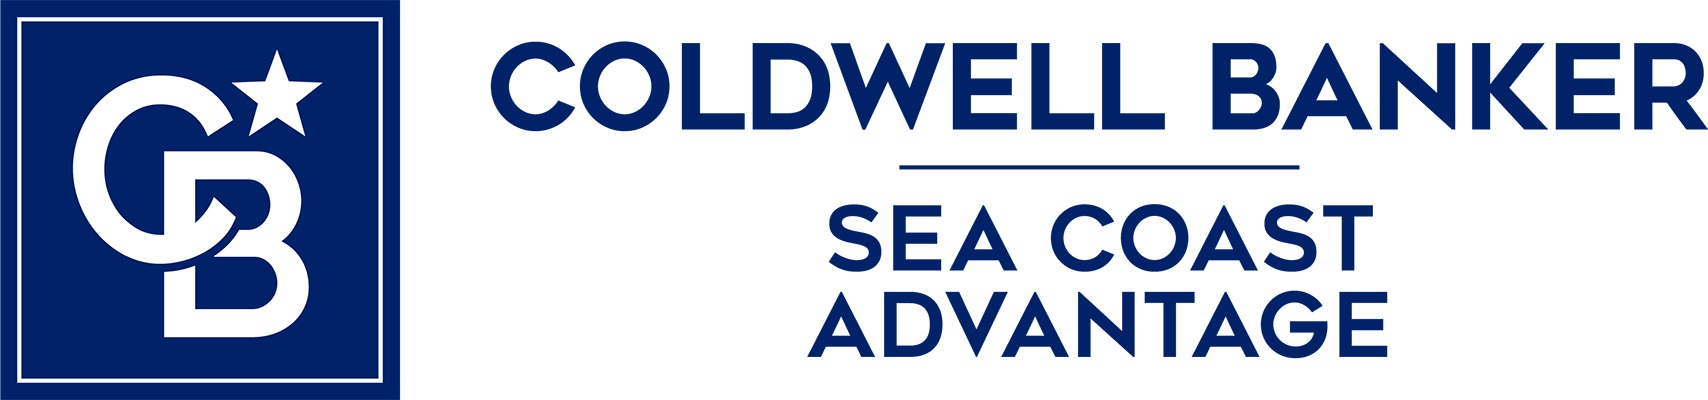 Linda Killian - Coldwell Banker Sea Coast Advantage Realty Logo